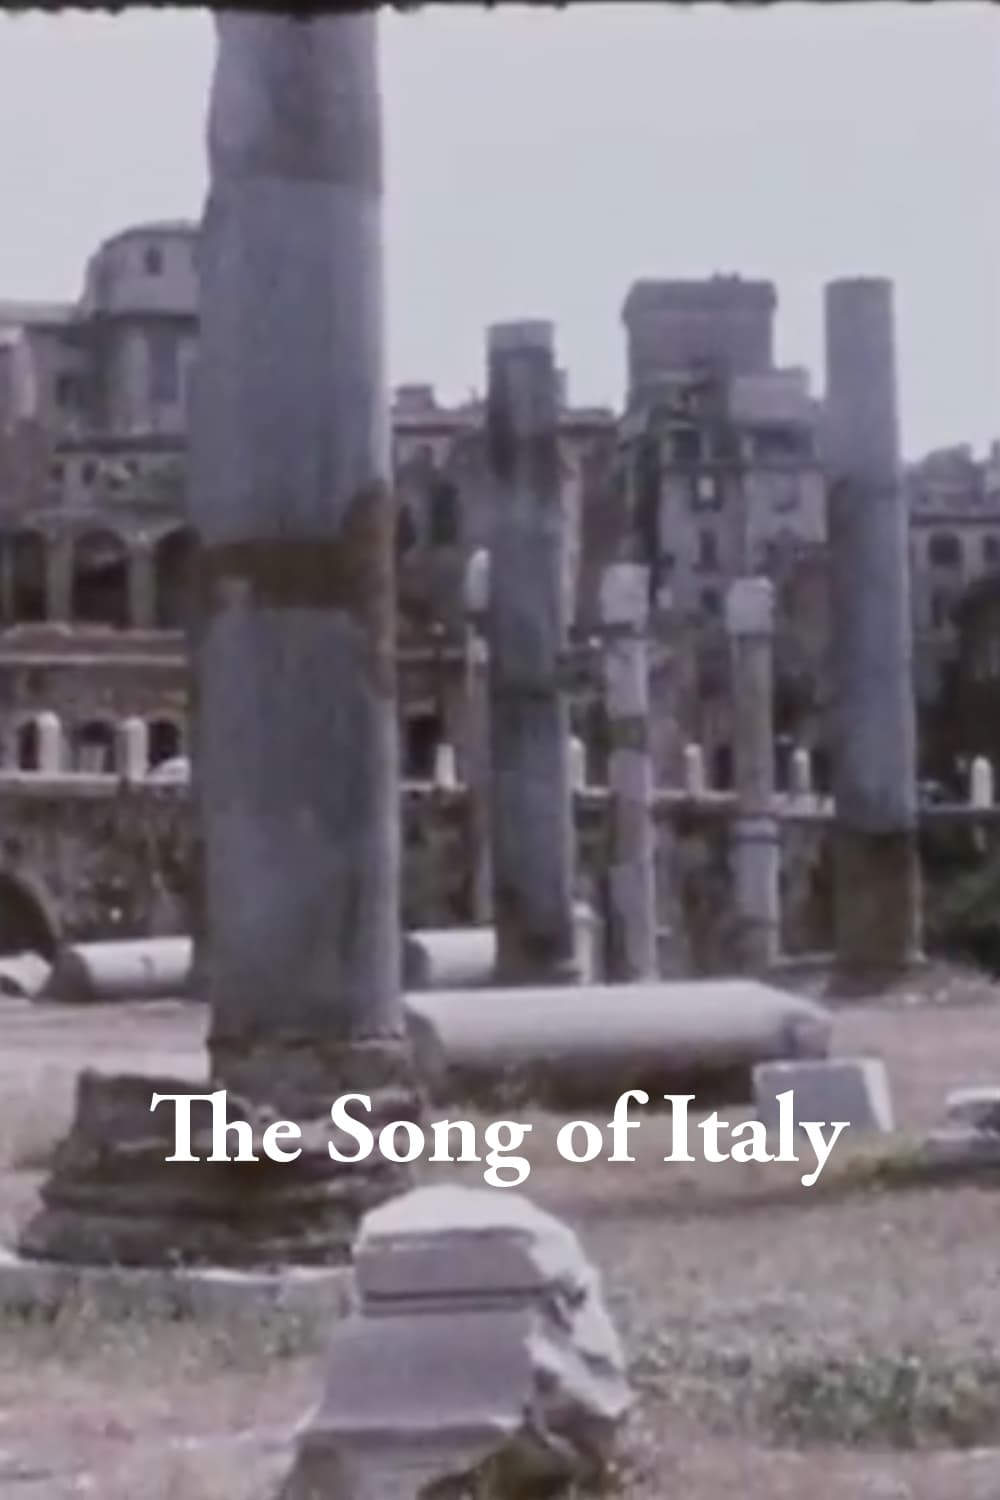 The Song of Italy (1967)